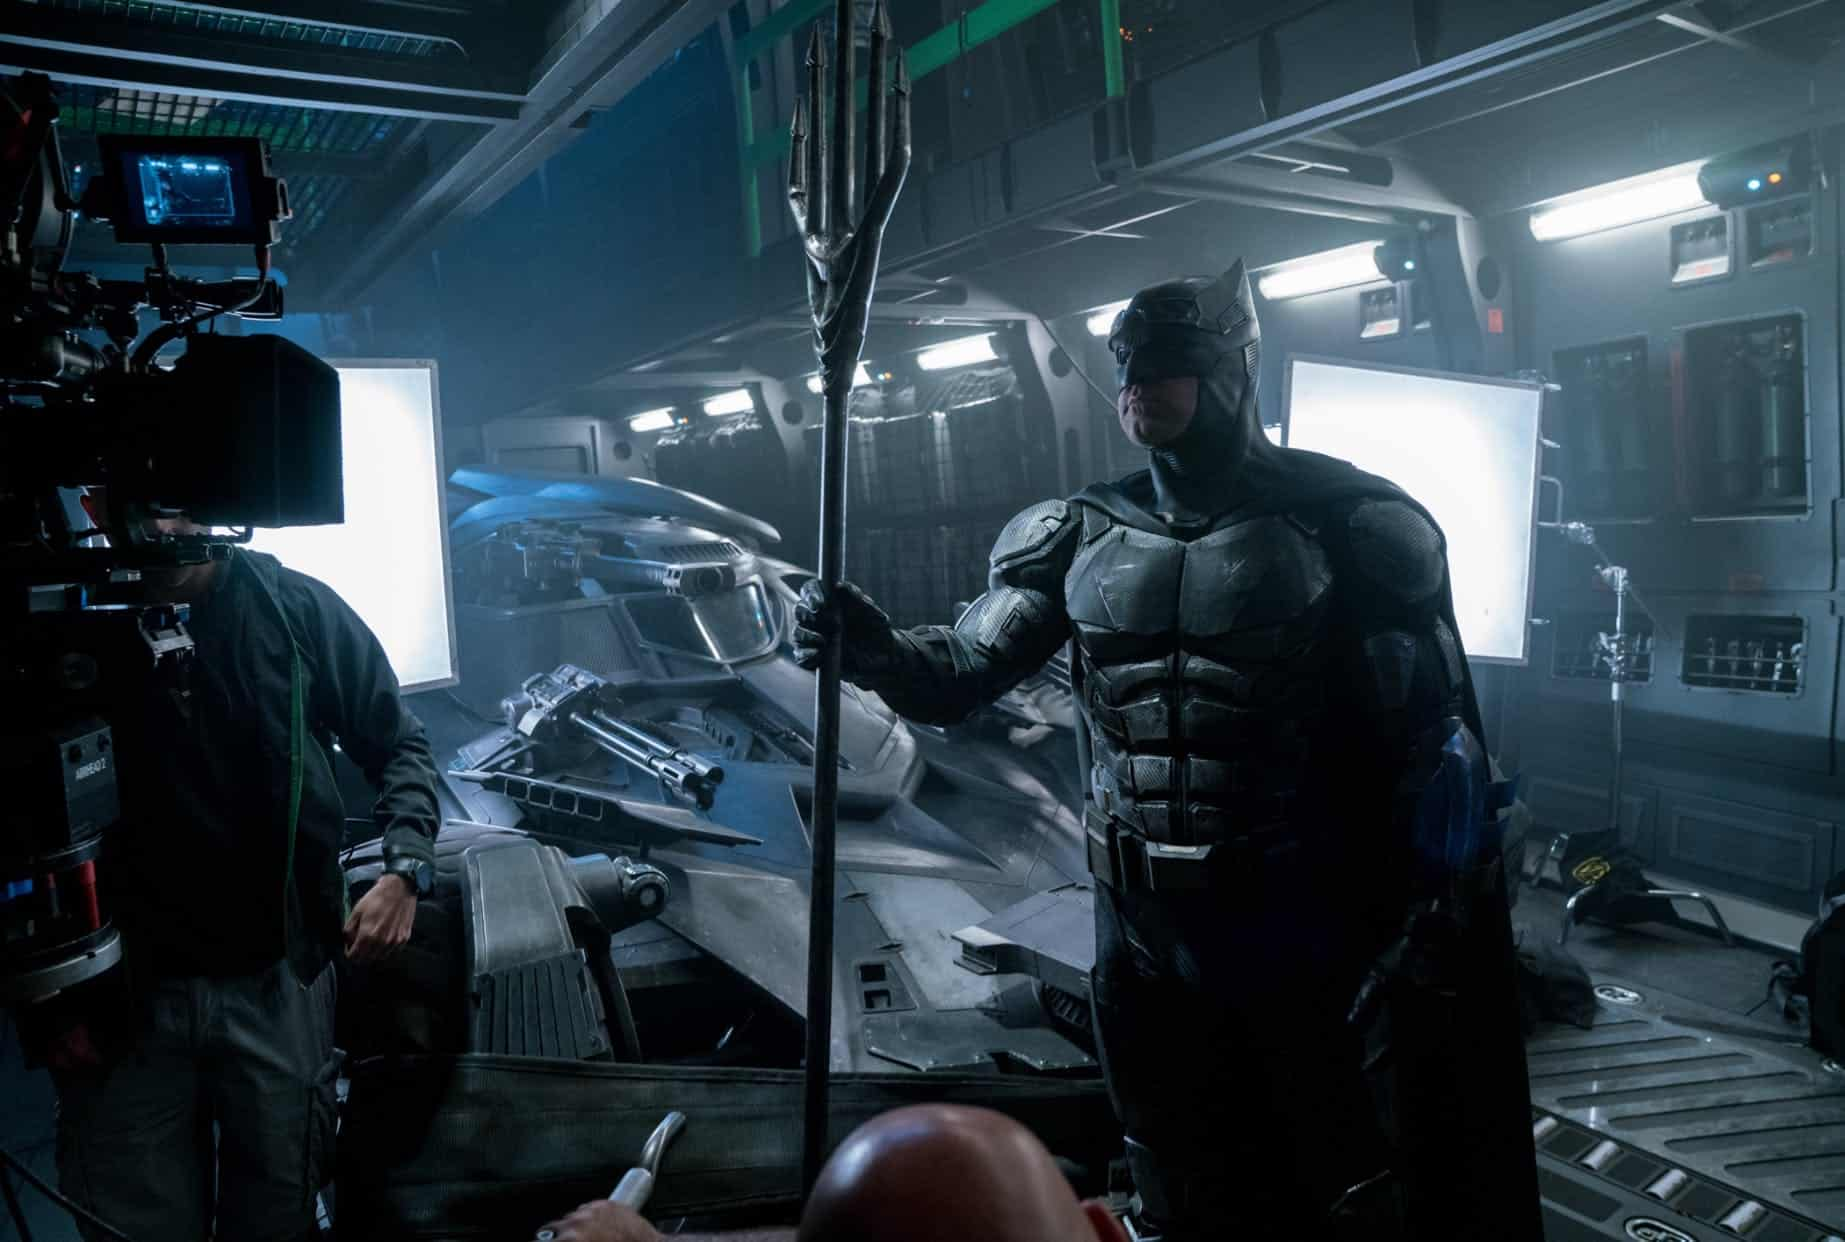 Ben Affleck's Batman in Justice League - Credit: Warner Bros. Pictures